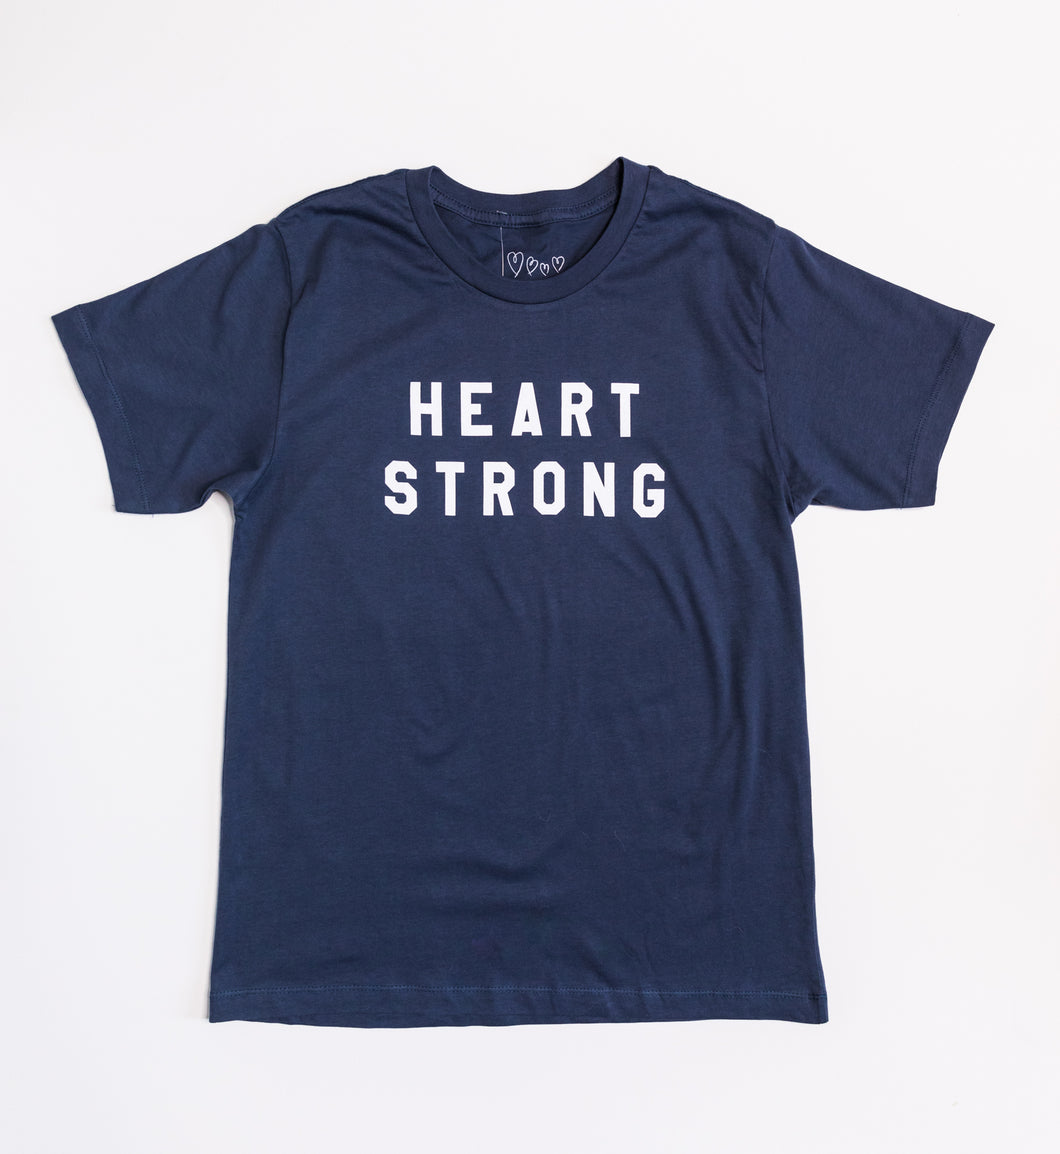 Heart Strong for Healthcare Short Sleeve - NAVY